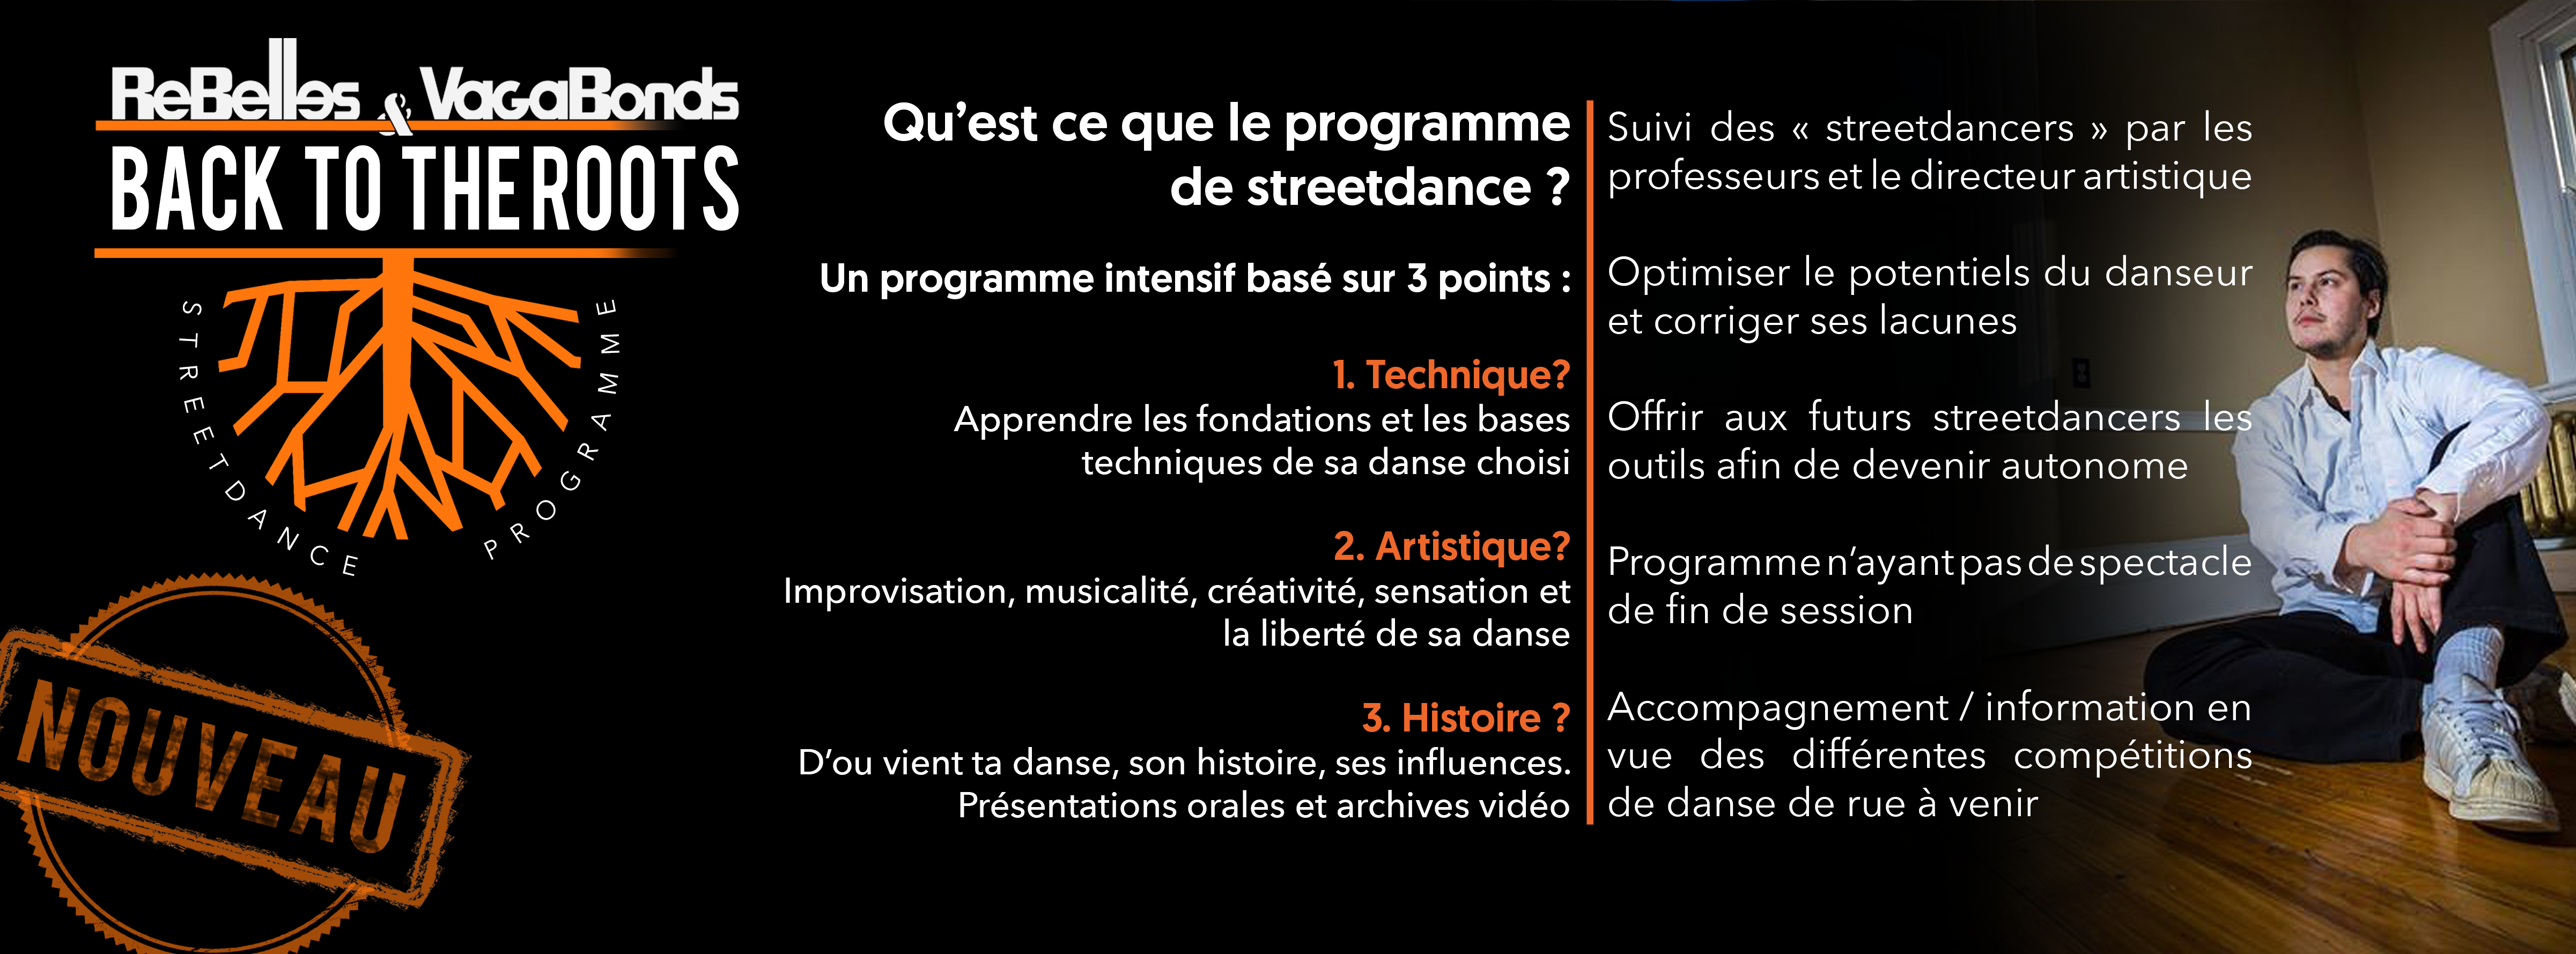 programme de streetdance back to the roots